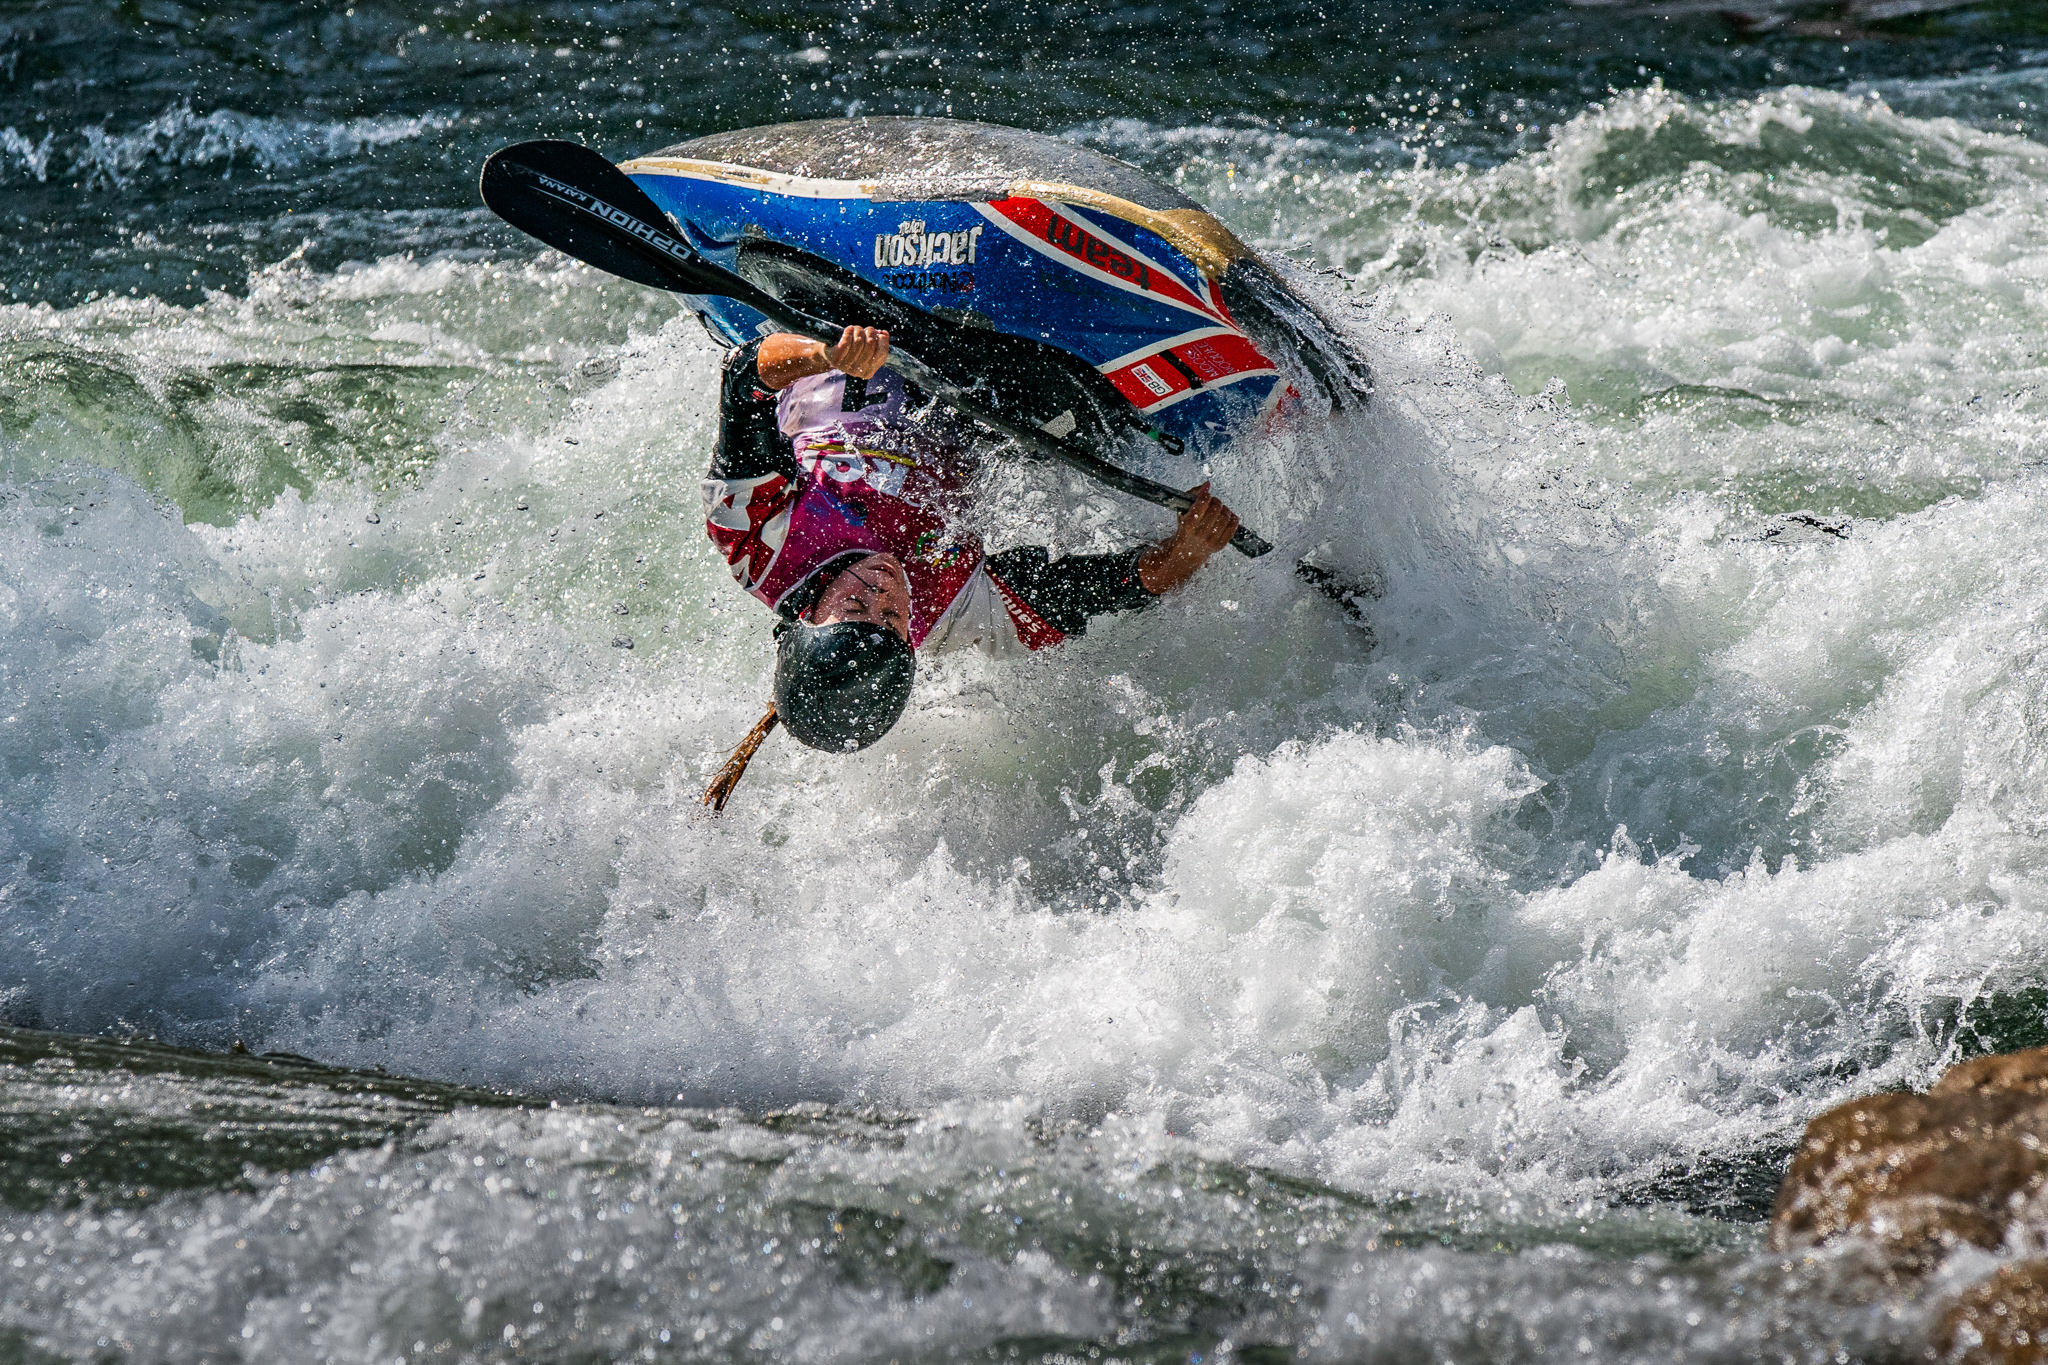 Ottlie Robinson-Shaw (GBR) flies high and retains her title of world champion. ©Peter Holcombe:kayaksession.com